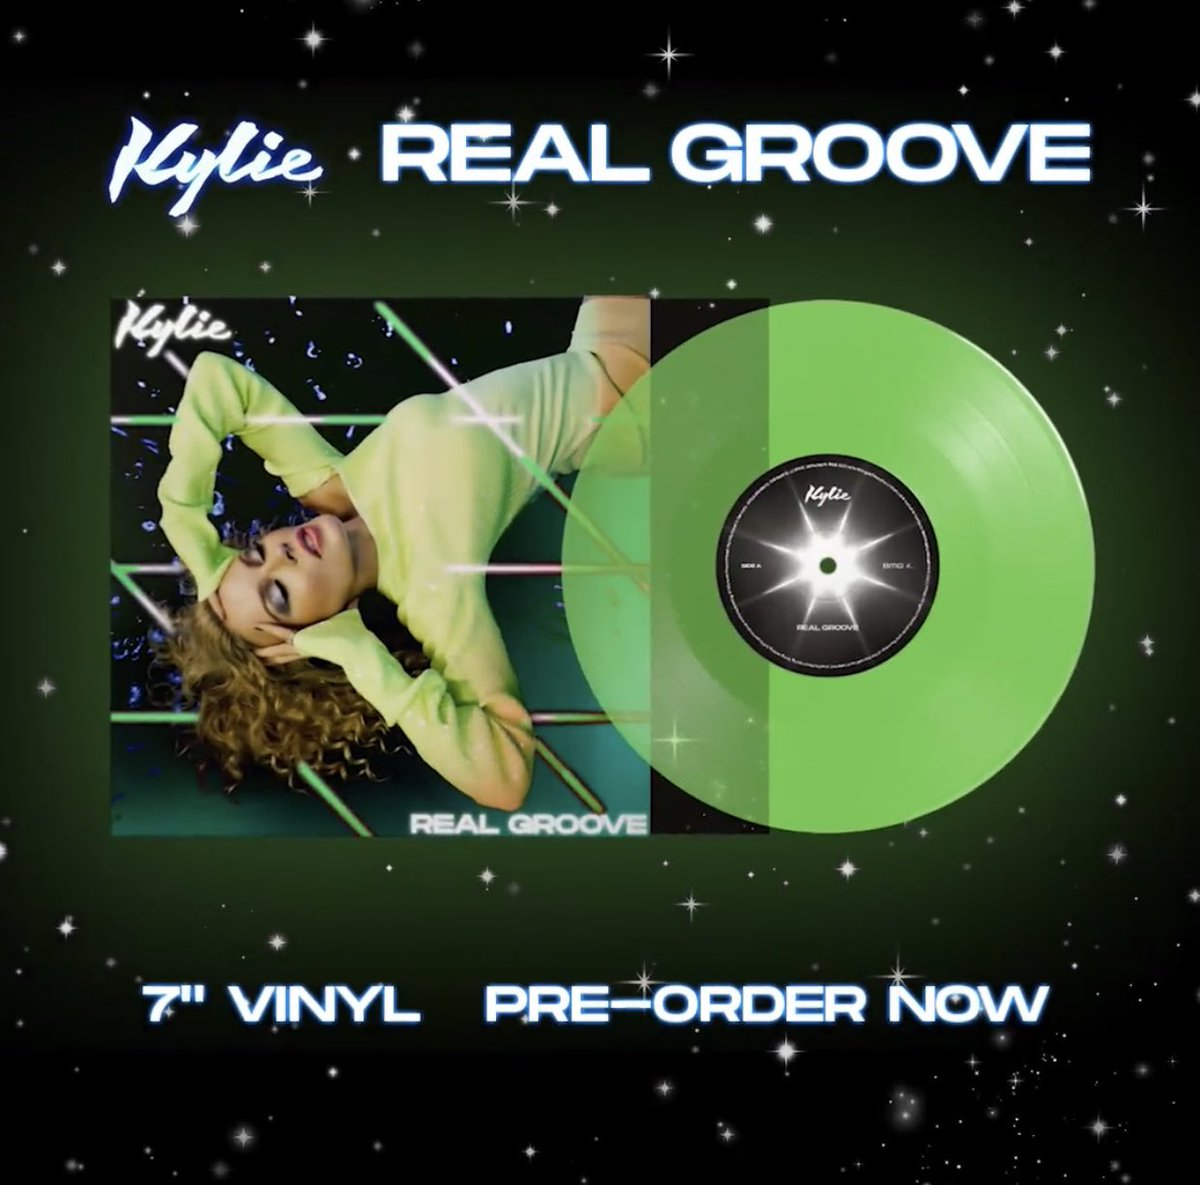 @kylieminogue #RealGroove #green #7inch #vinyl ordered!! 😁👍🏻🎶💃🏼🕺🏼 #BSide includes #Studio2054 #Remix with @dualipa xx